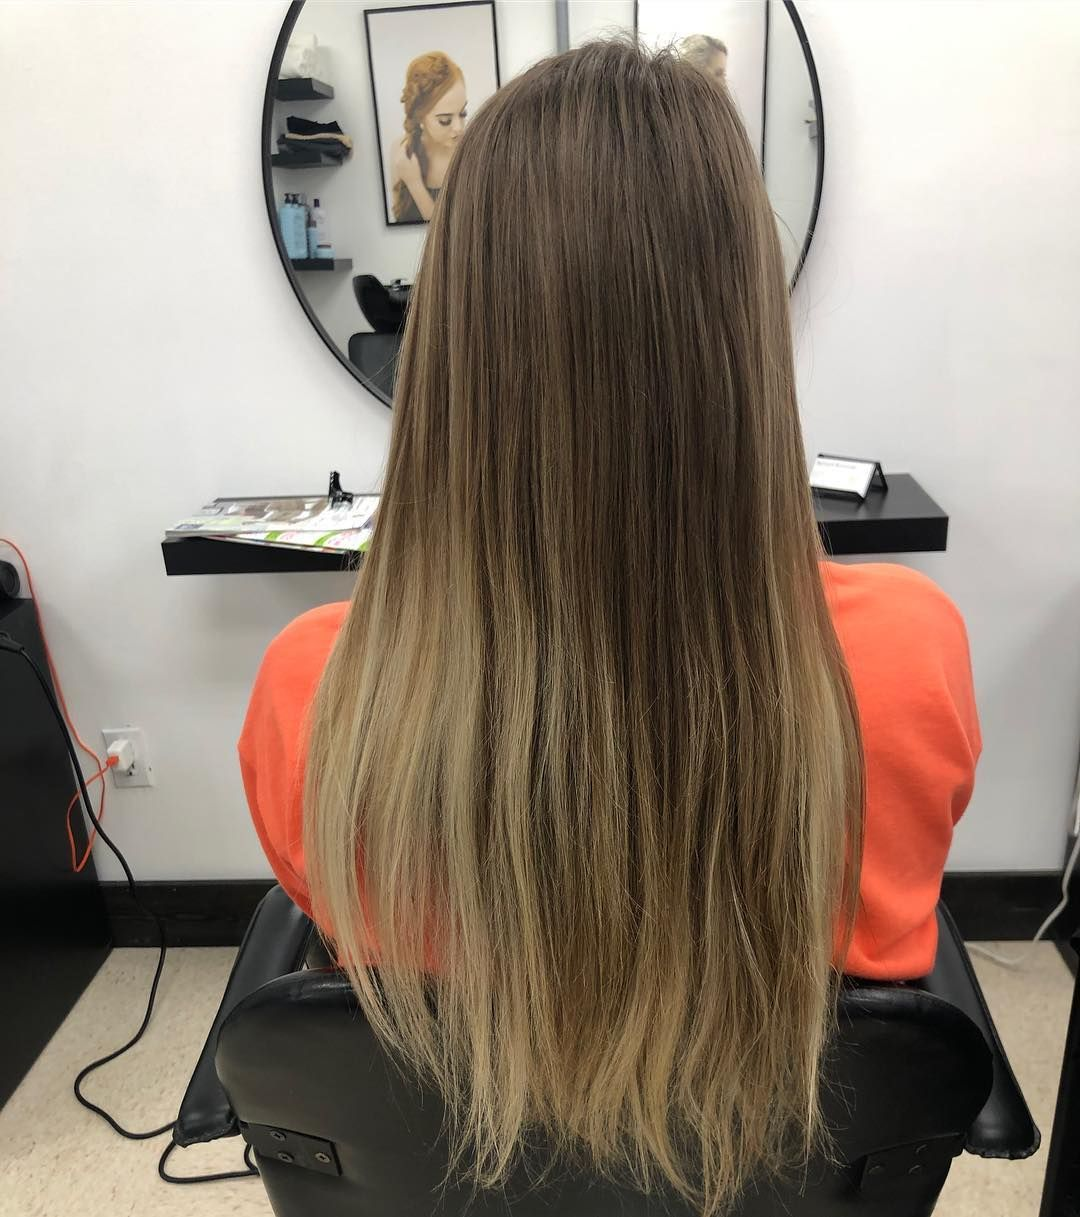 New The 10 Best Hairstyles With Pictures Not Our Work Our New Client Came To Us In Distress Of What Her Current Hair W Hair Styles Long Hair Styles Hair